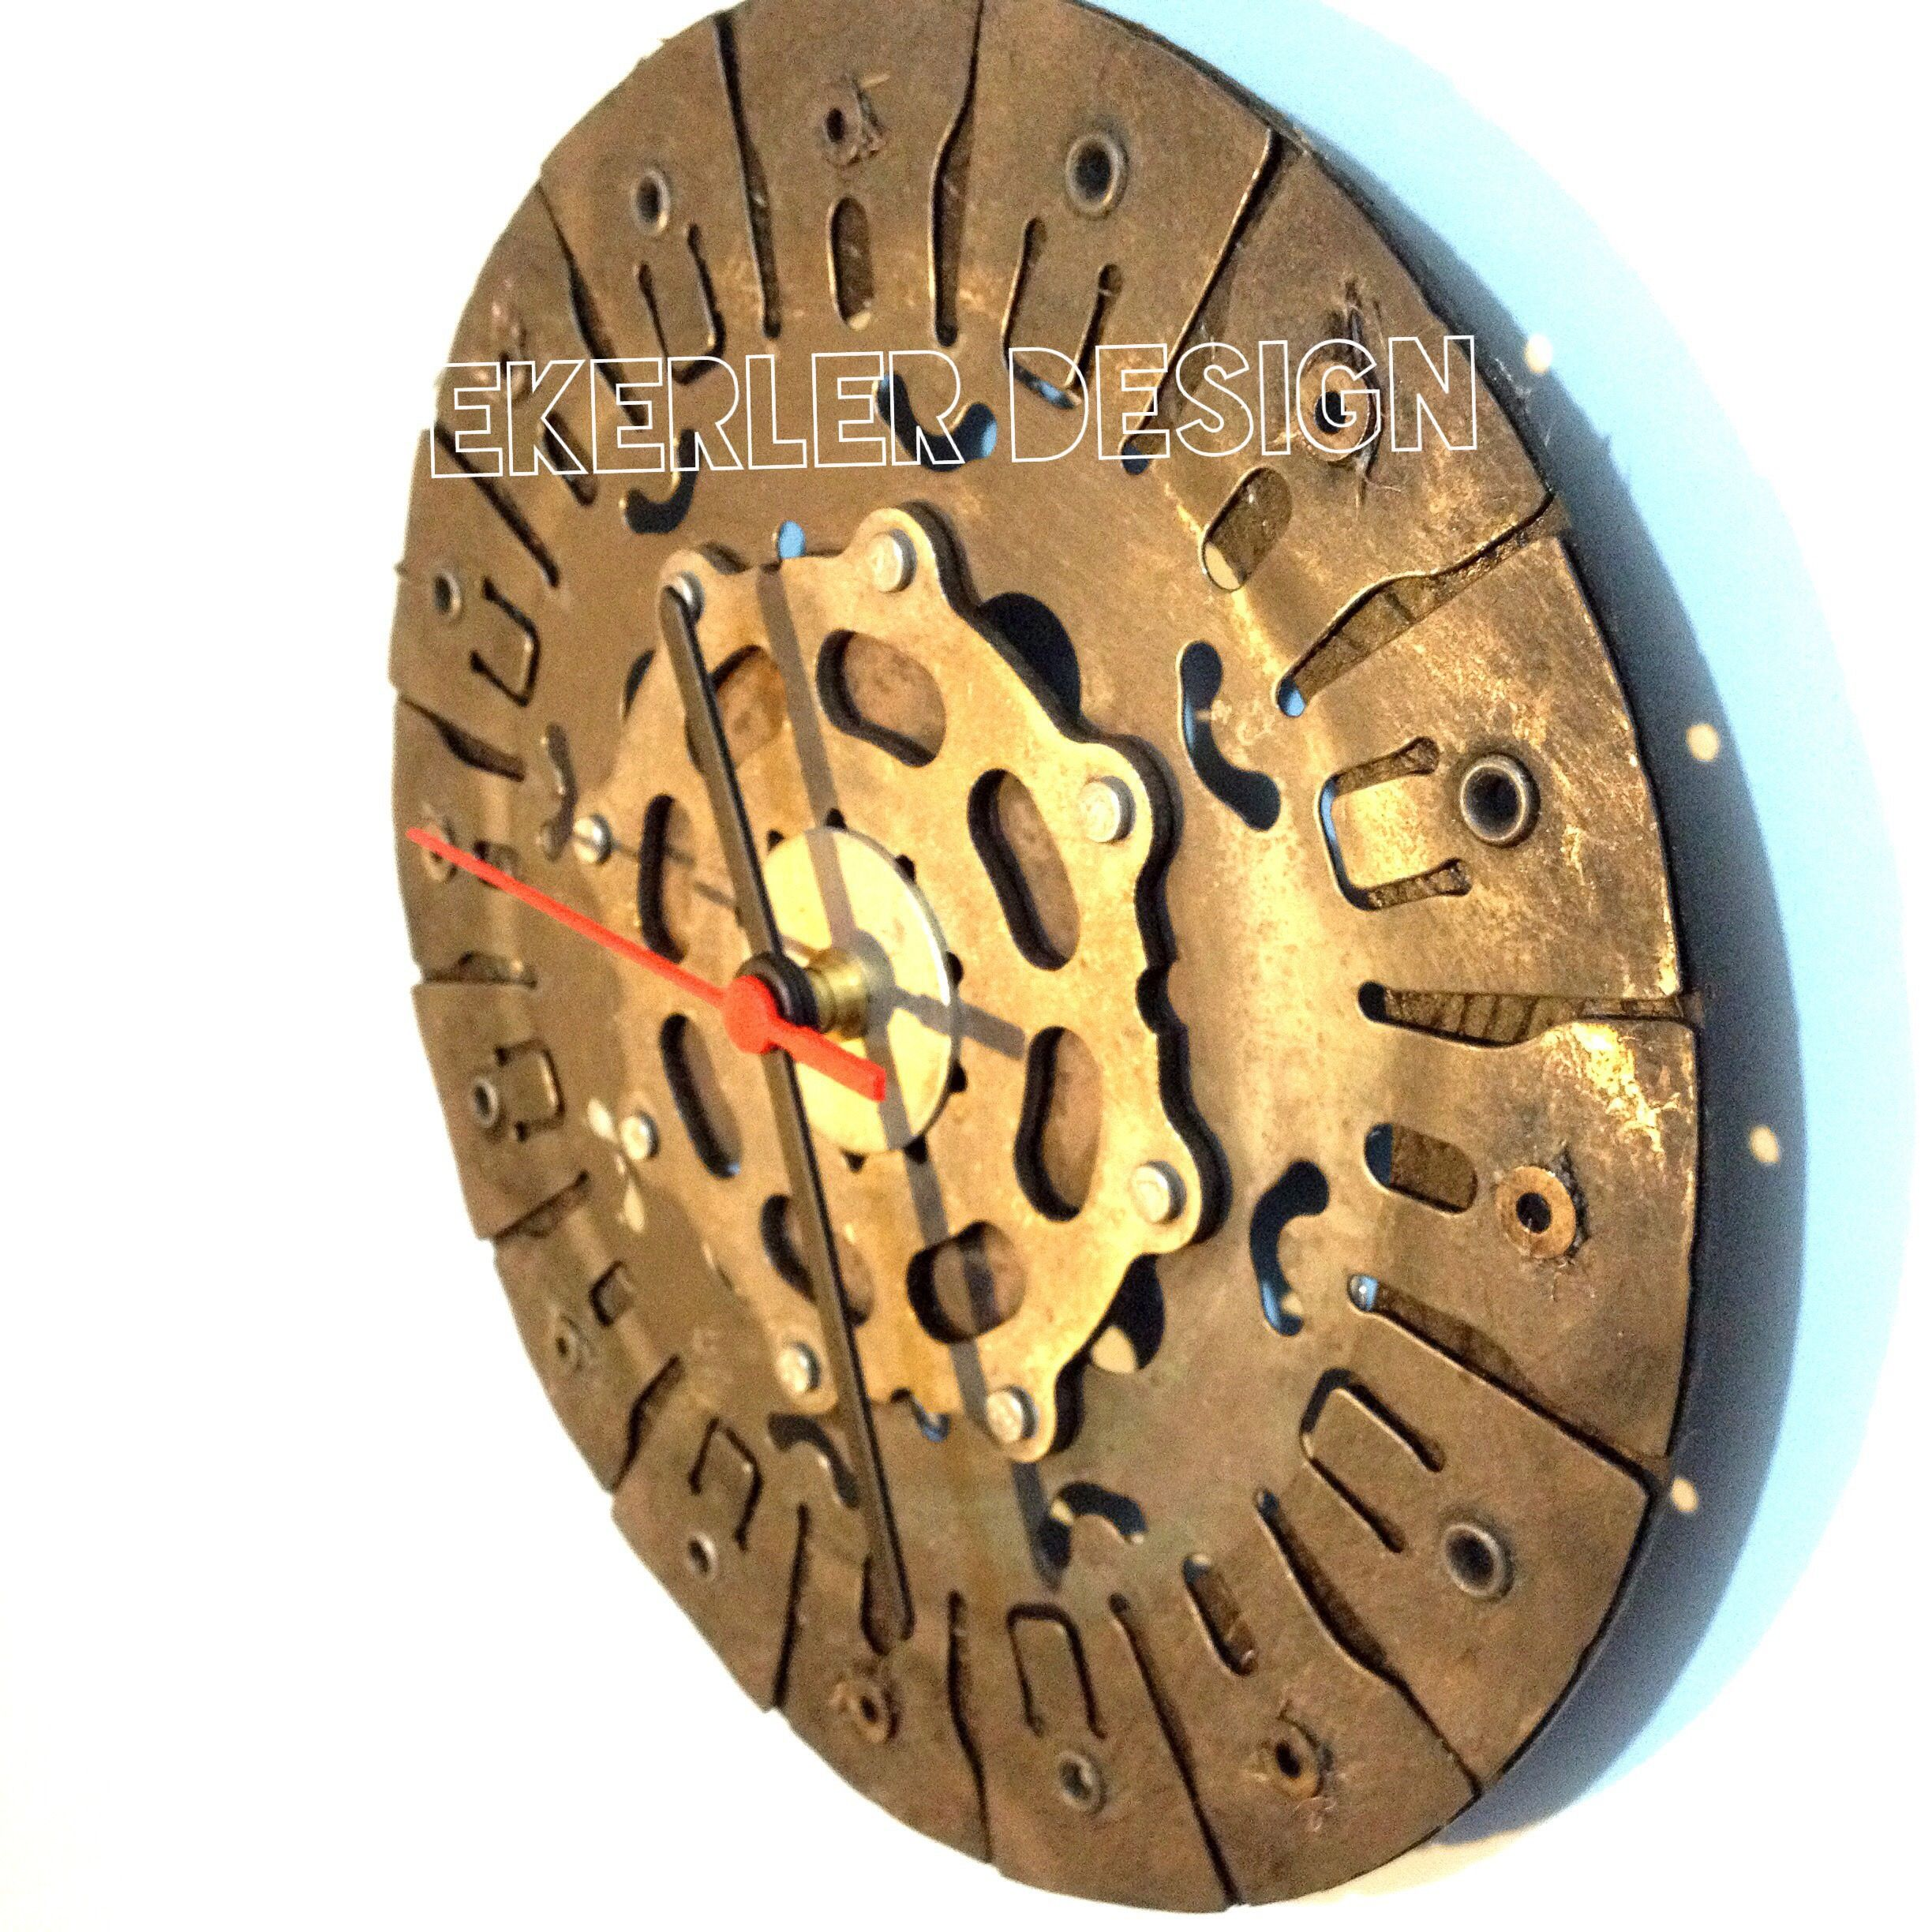 Car clutch wall clock time clock watches recycle wall clock car clutch wall clock time clock watches recycle amipublicfo Image collections